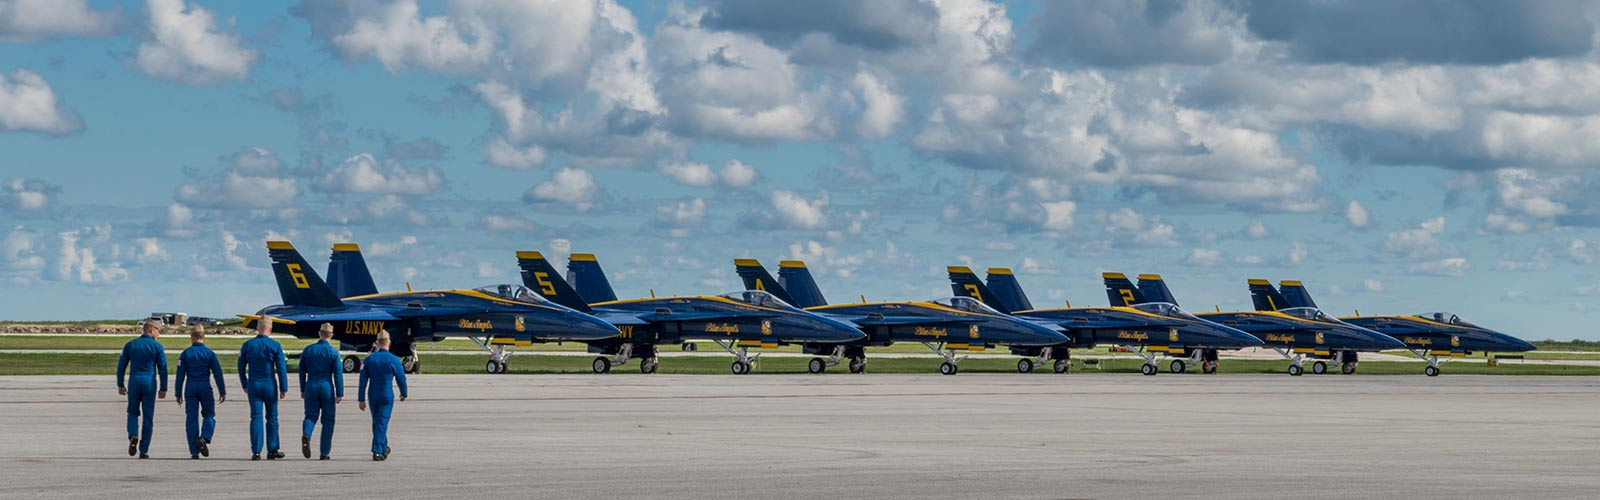 The Blue Angels - Cleveland National Air Show <span class='image-credits'>Bob Perkoski</span>